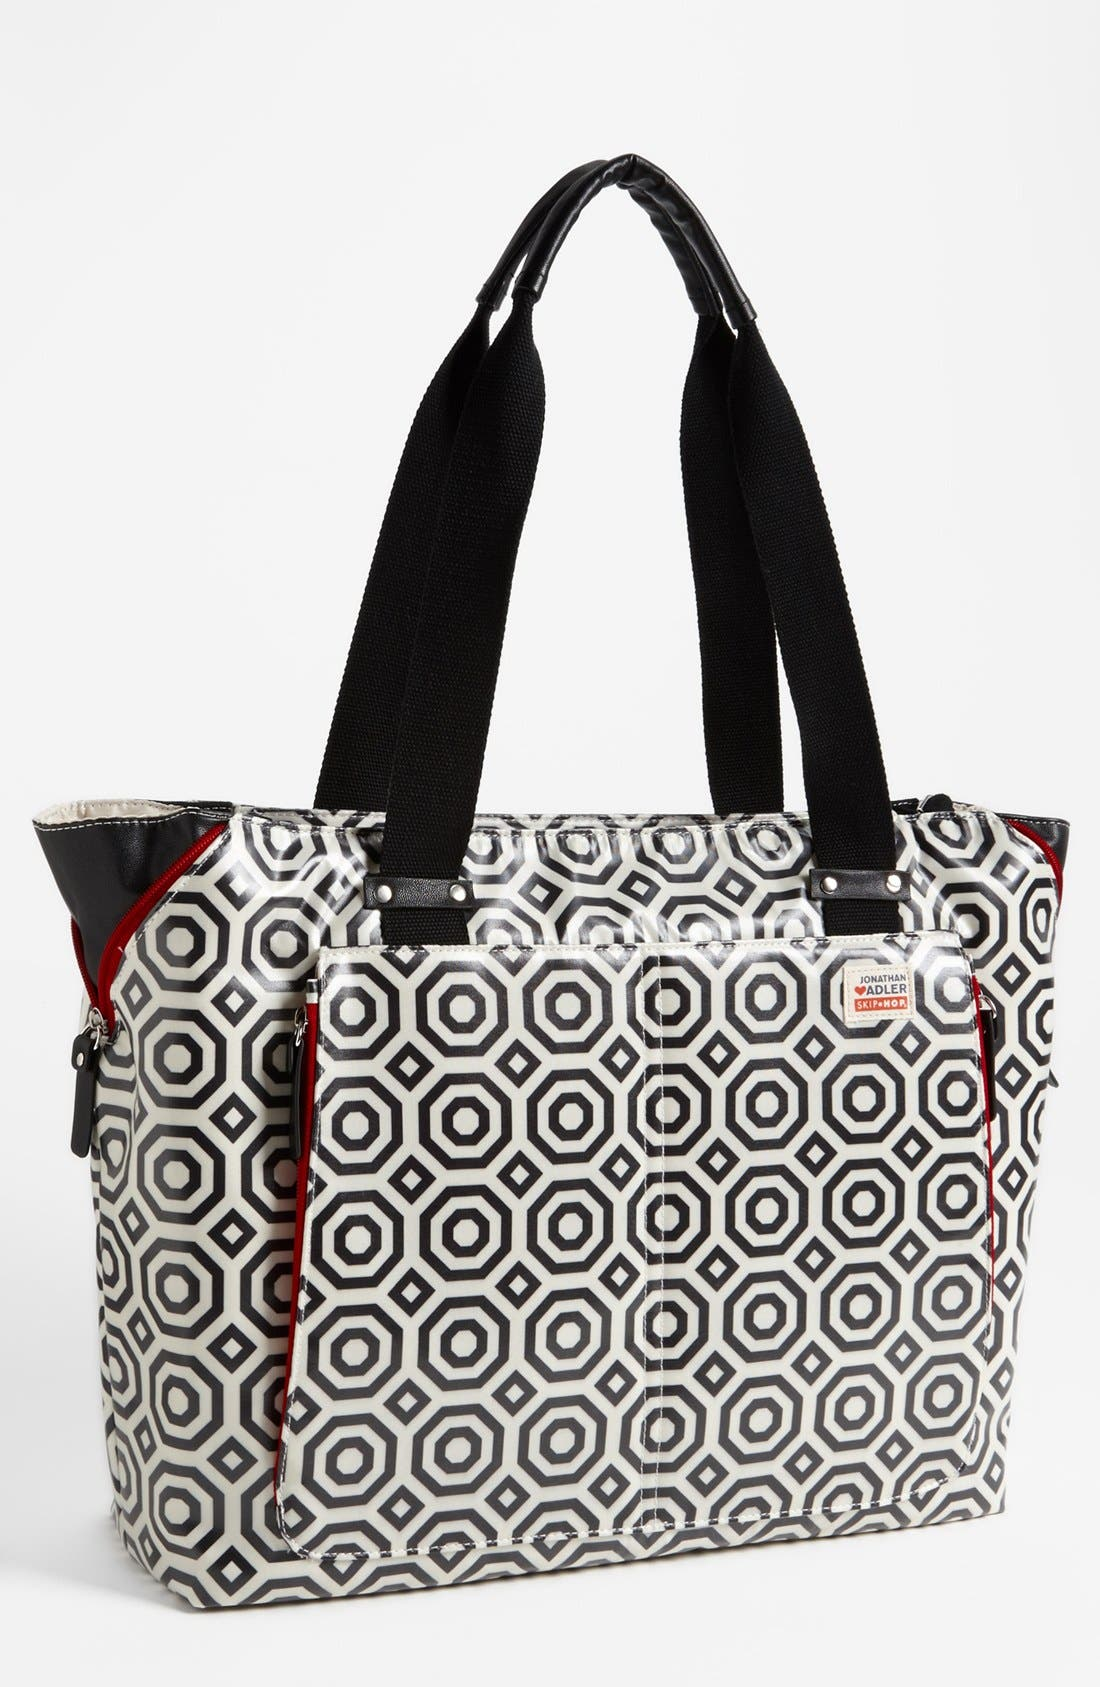 Alternate Image 1 Selected - Skip Hop 'Jonathan Adler - Light and Luxe' Tote